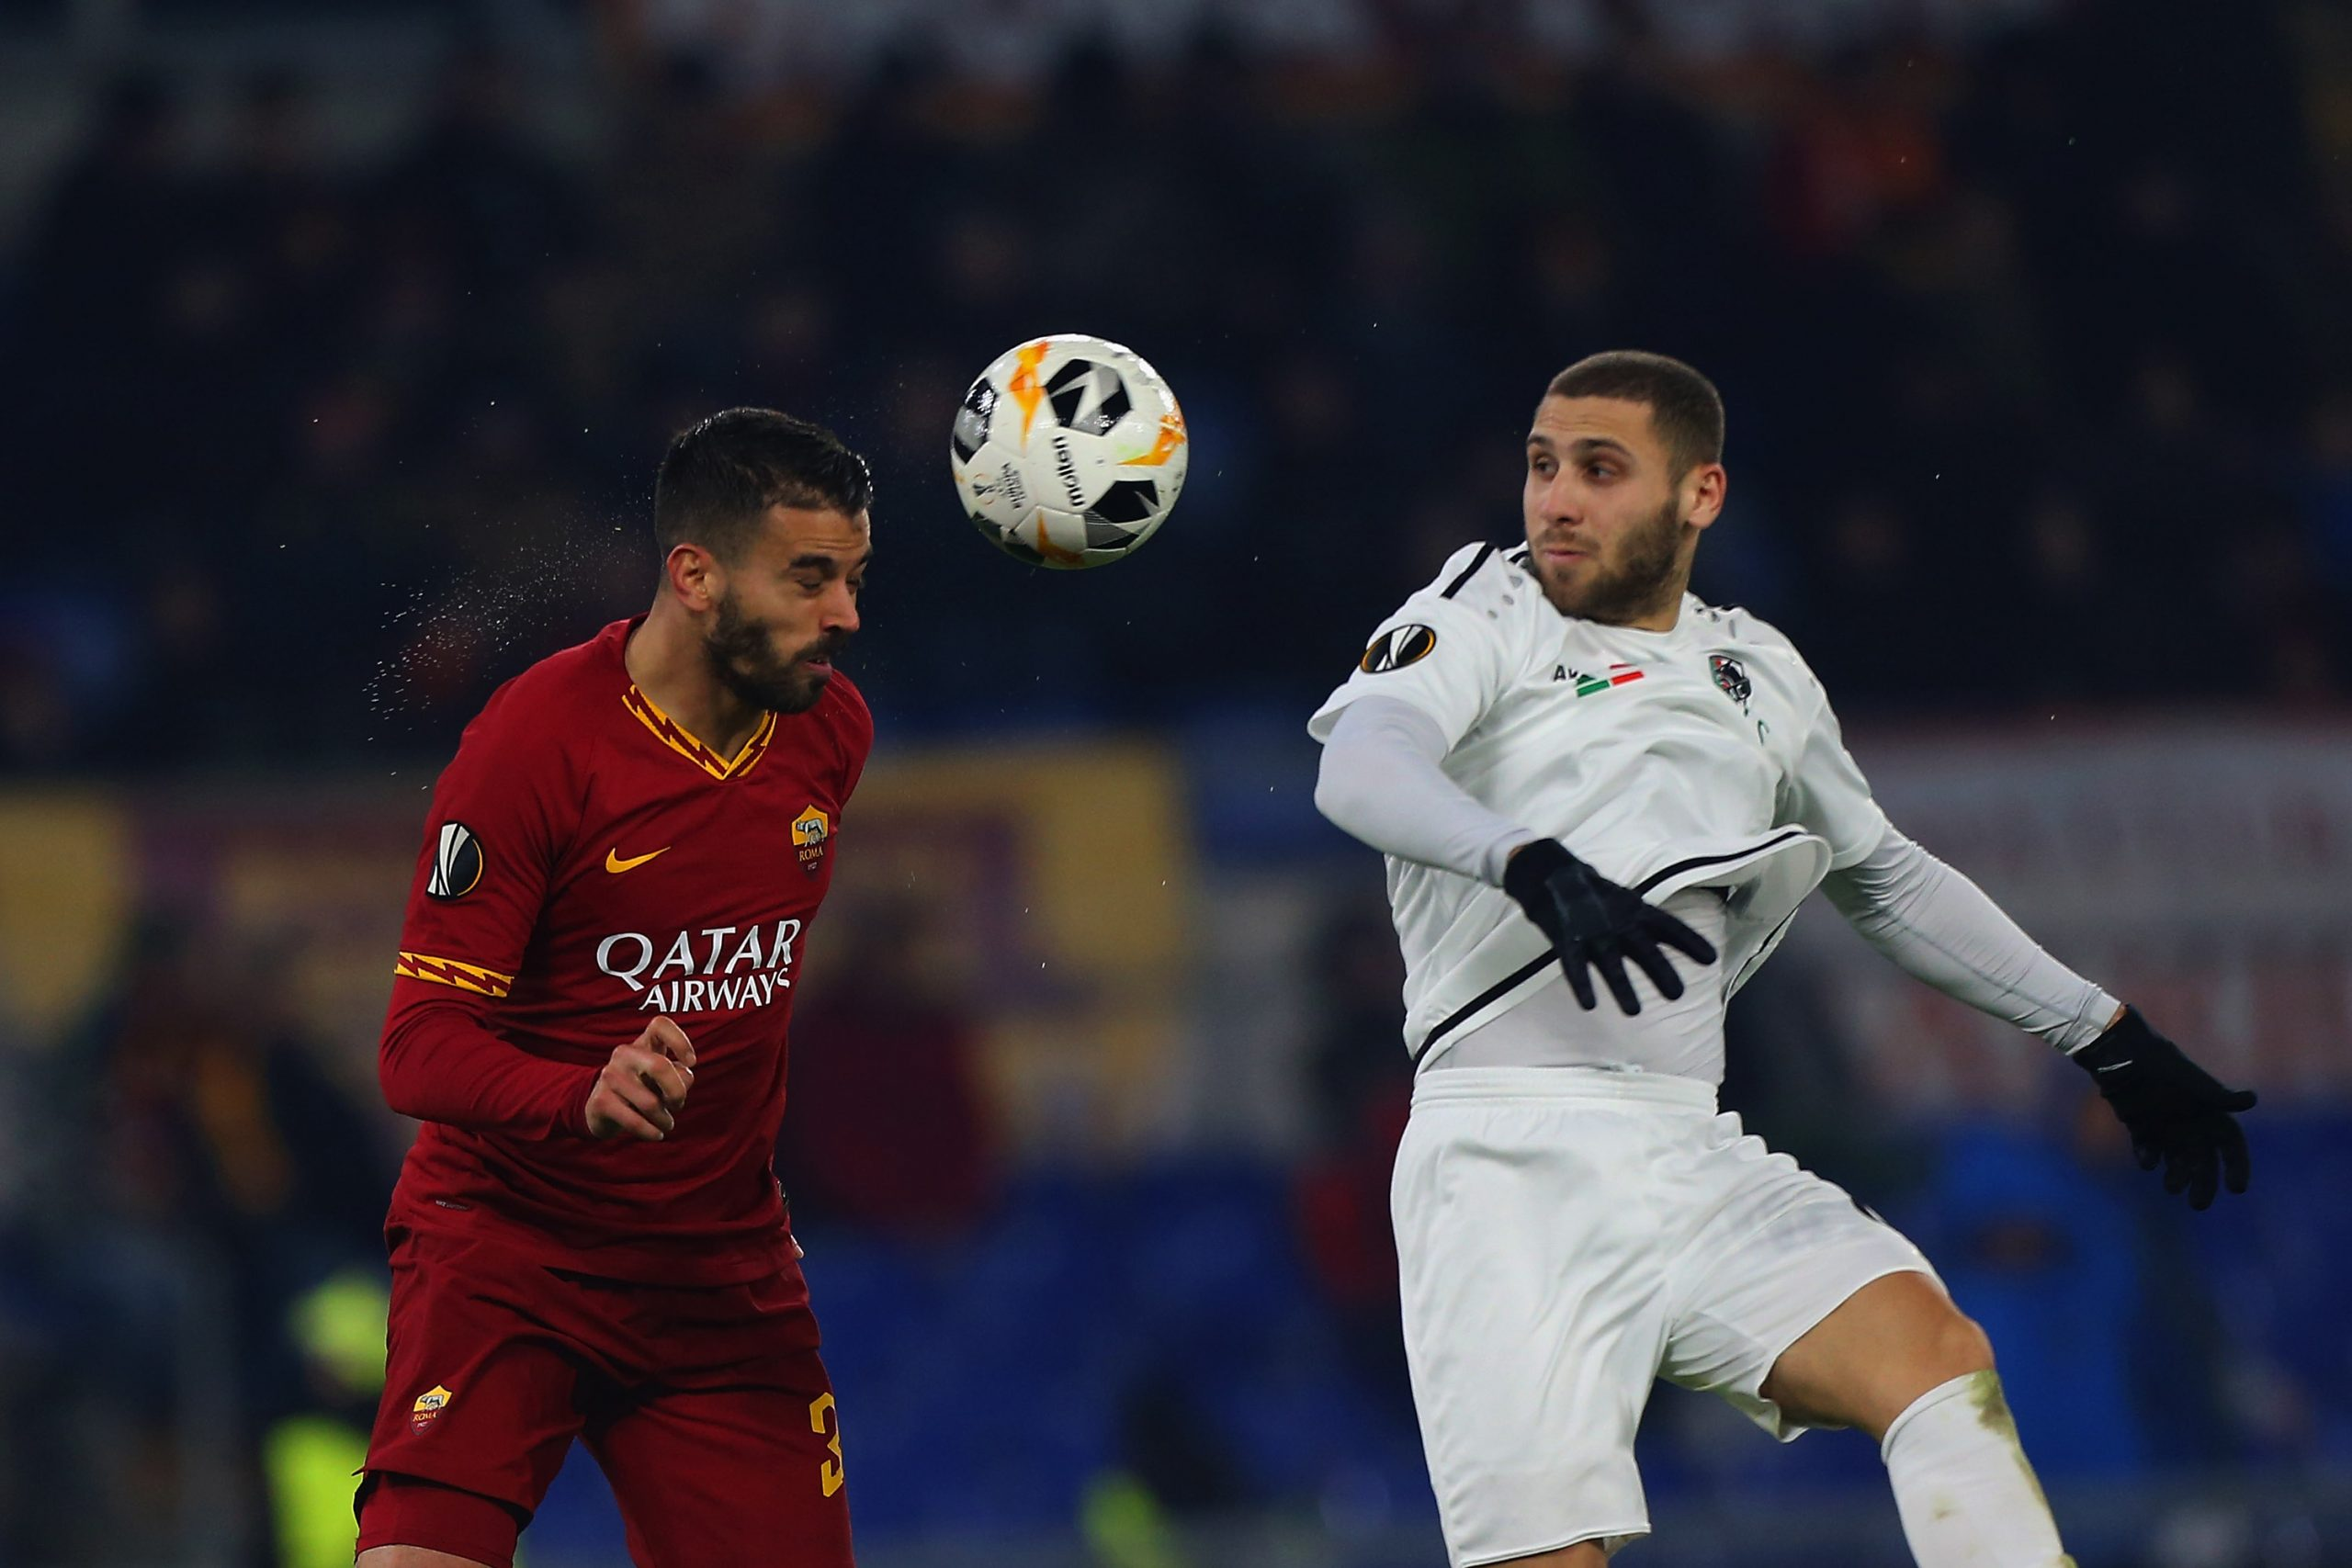 Shon Weissman (R) in action against AS Roma in the Europa League (Getty Images)